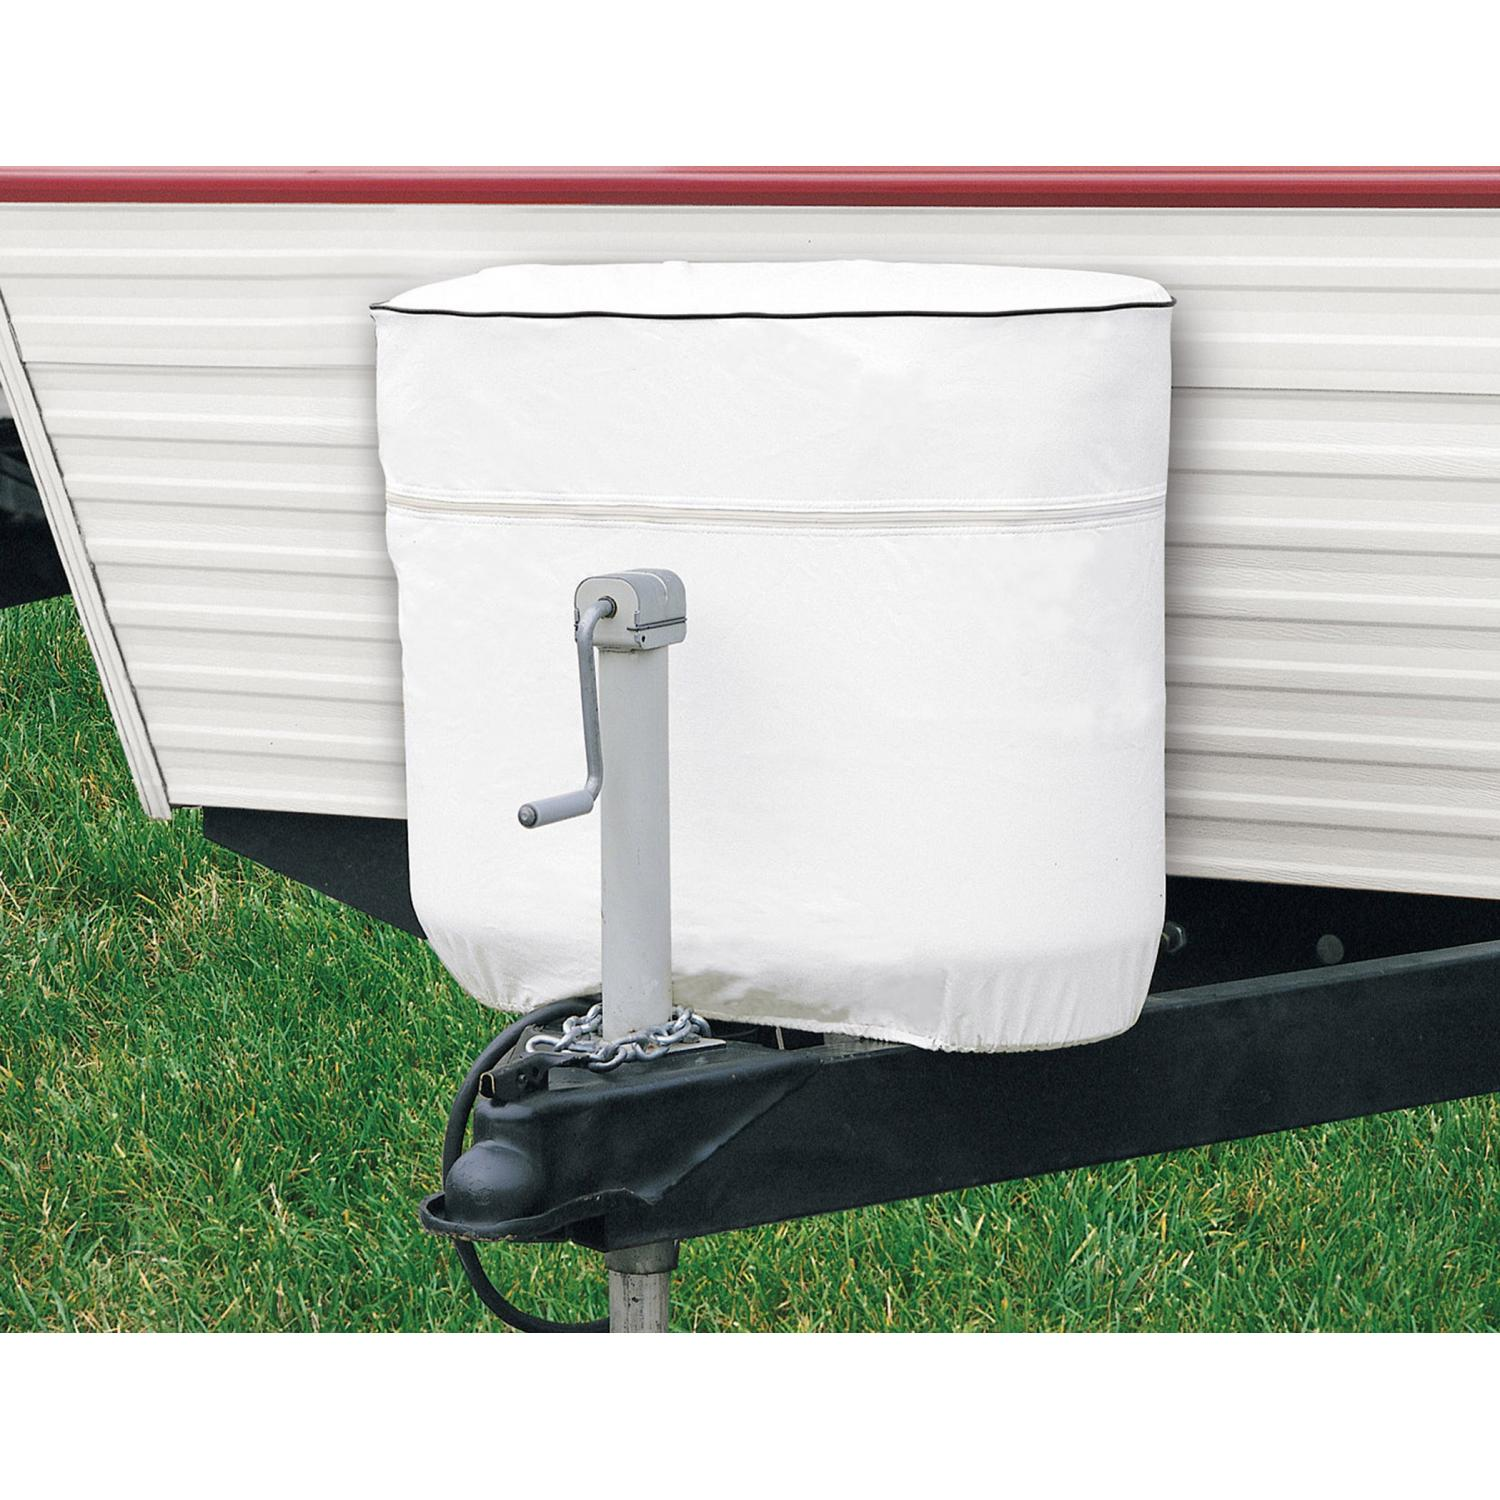 Classic Accessories RV Tank Cover - White - Model 3